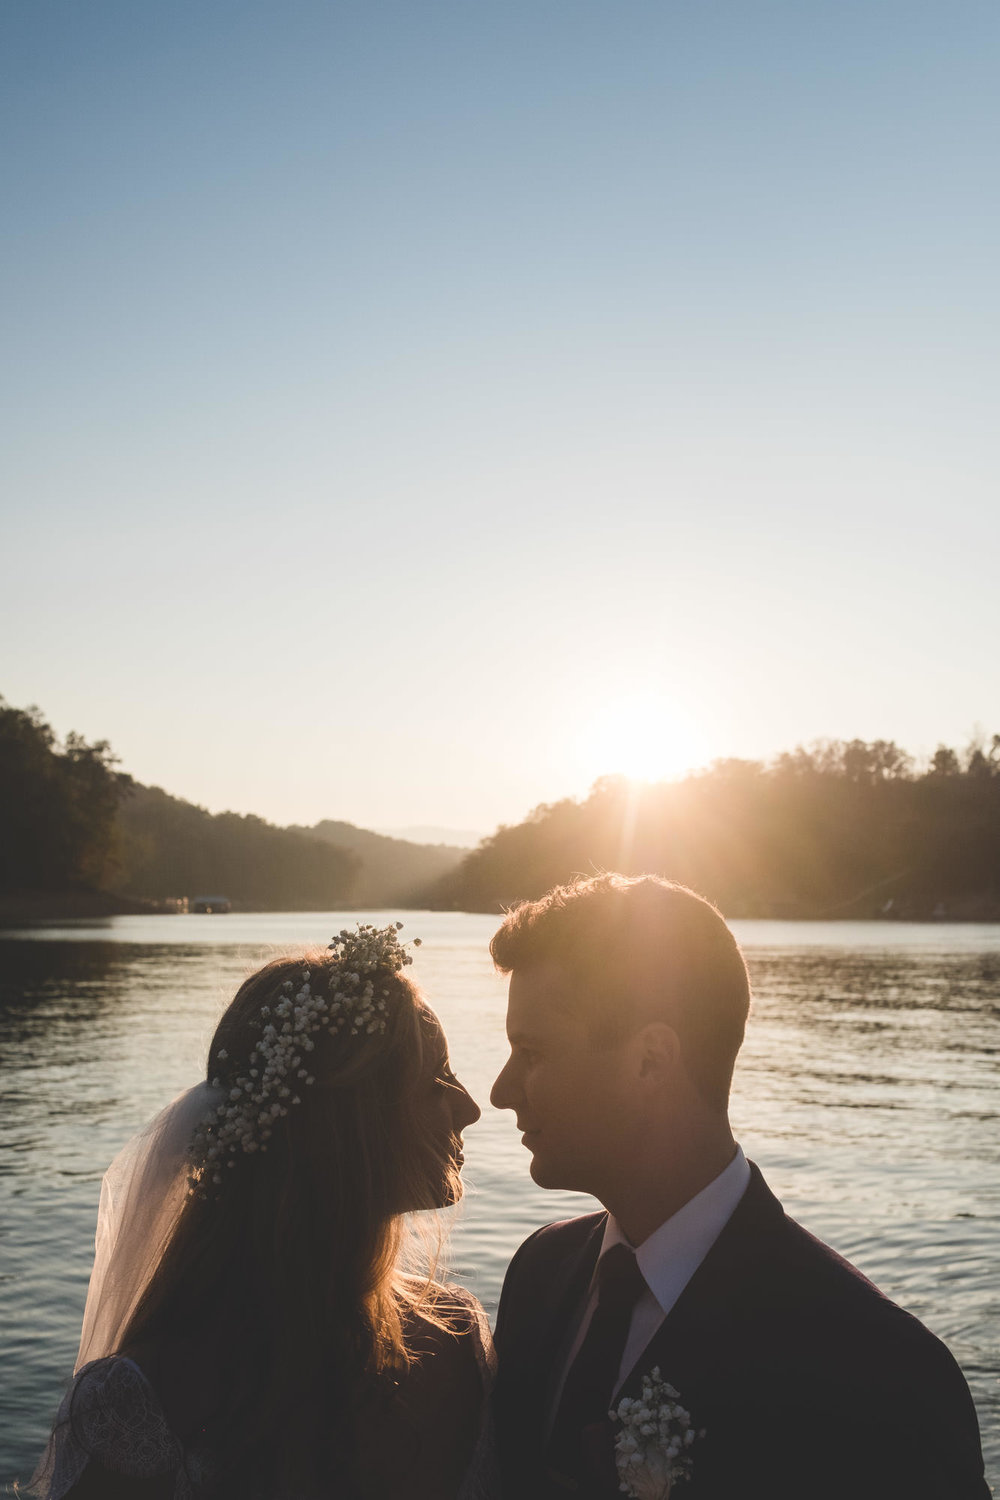 Christian & Molly's Norris Lake House Tennessee Wedding - www.RHatfieldPhotography.com